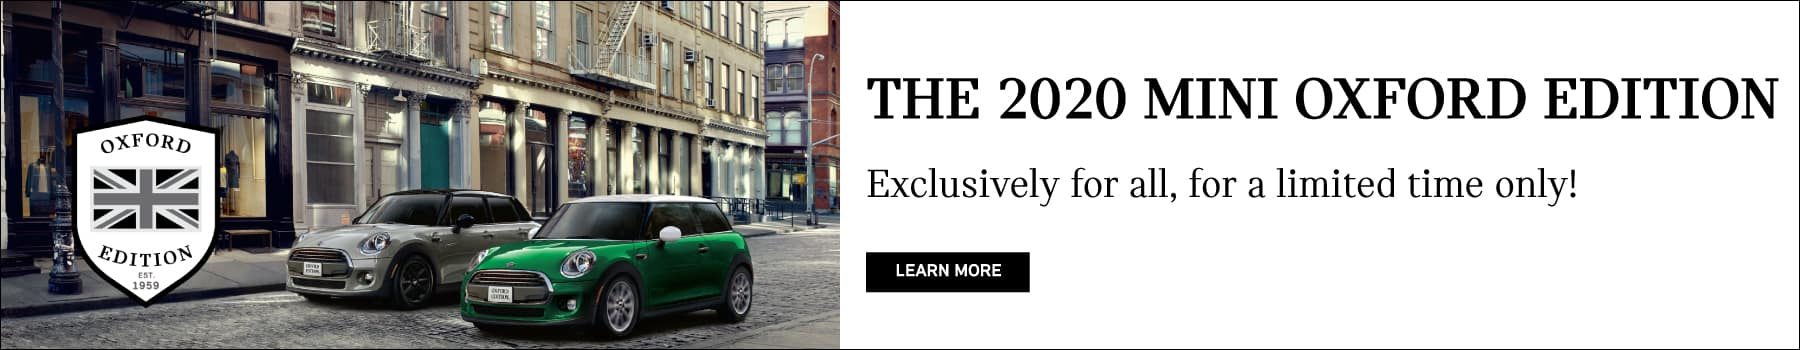 2020 MINI OXFORD EDITION. Exclusively for all, for a limited time only!